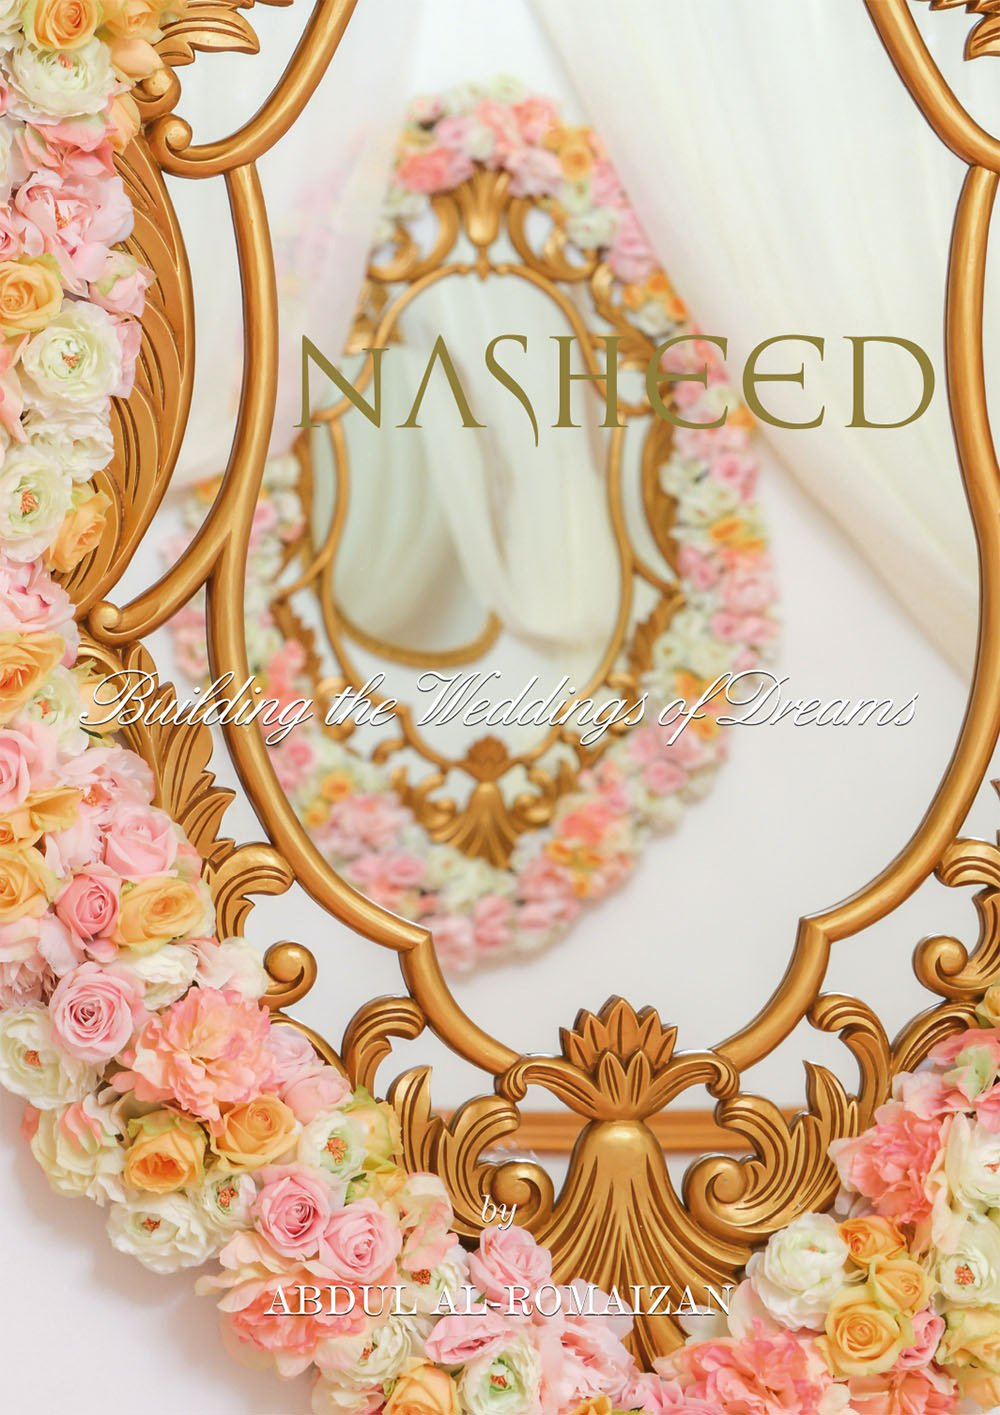 NASHEED: Building the Weddings of Dreams